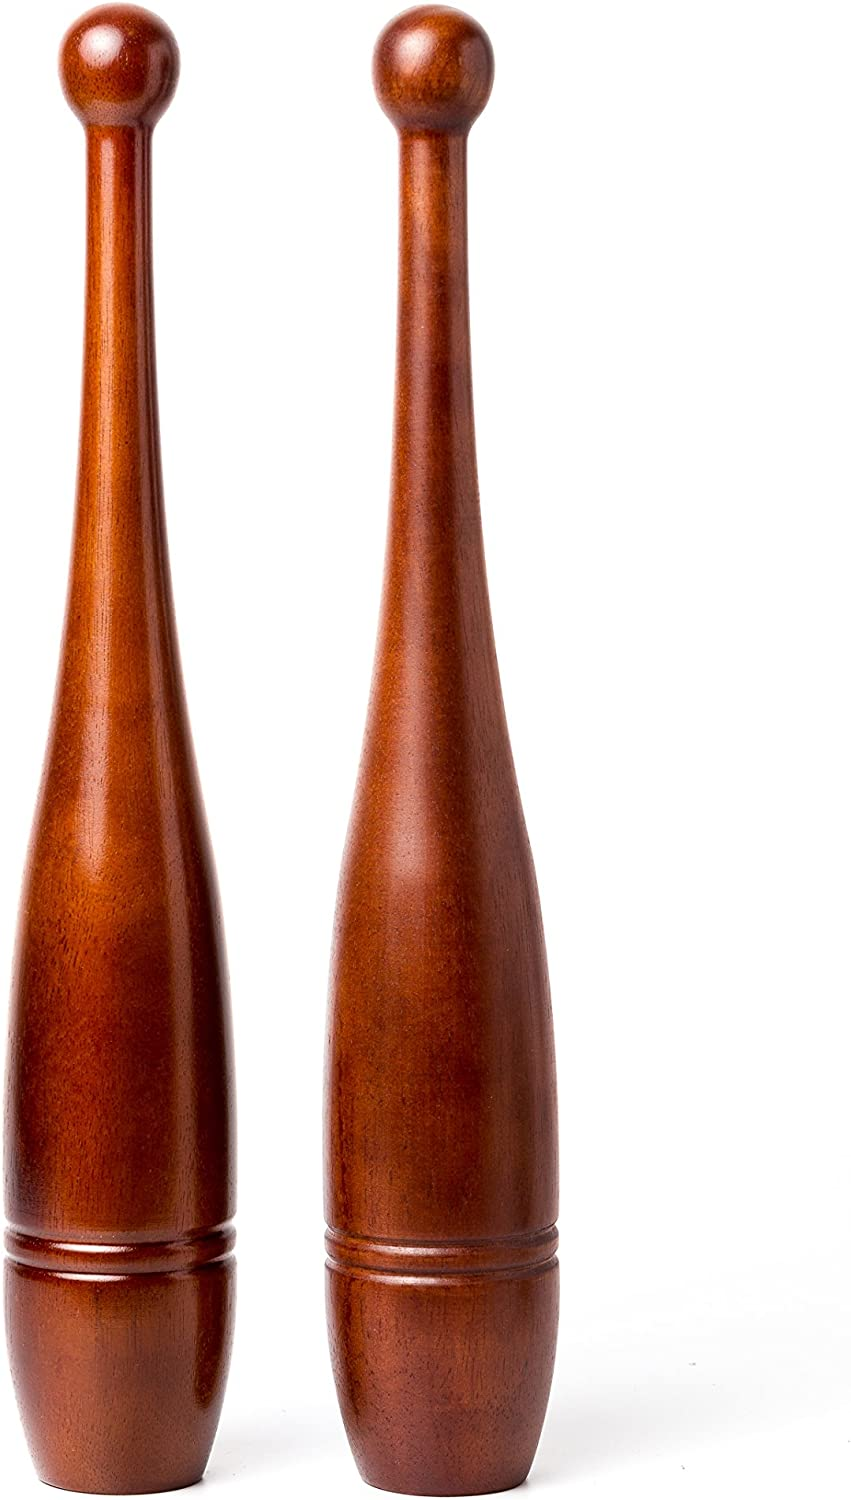 OFFicial mail order Rotational Over item handling Clubs: 2lb Indian Clubs - Pair Solid Oak Wood